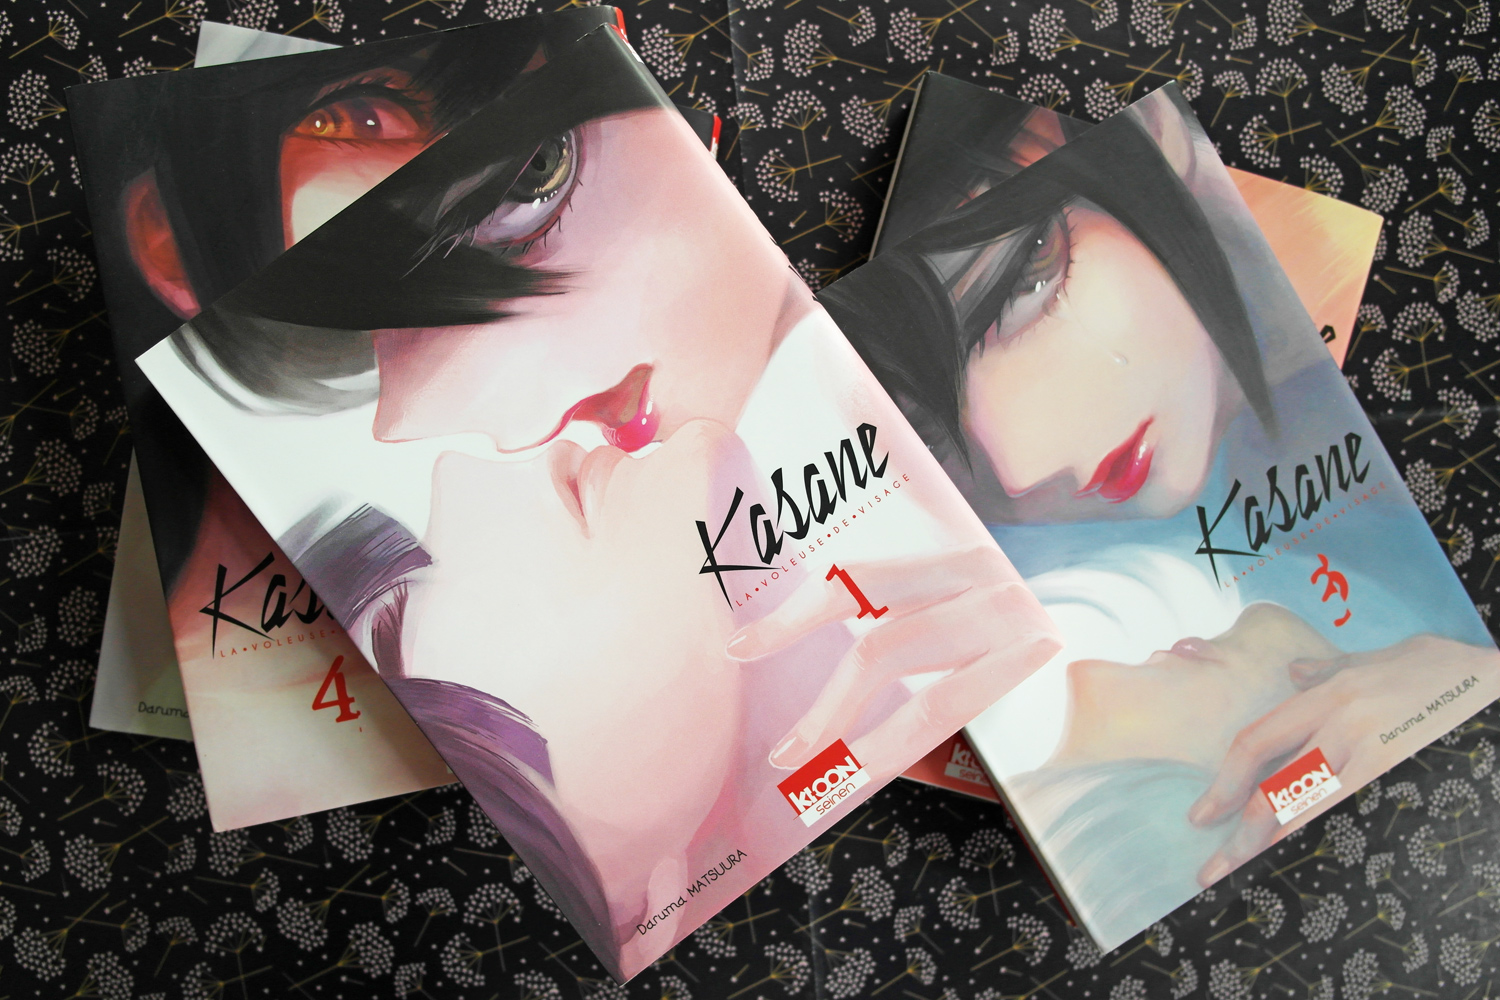 la-coutch-blog-lifestyle-kasane-manga-coup-de-coeur-kioon6